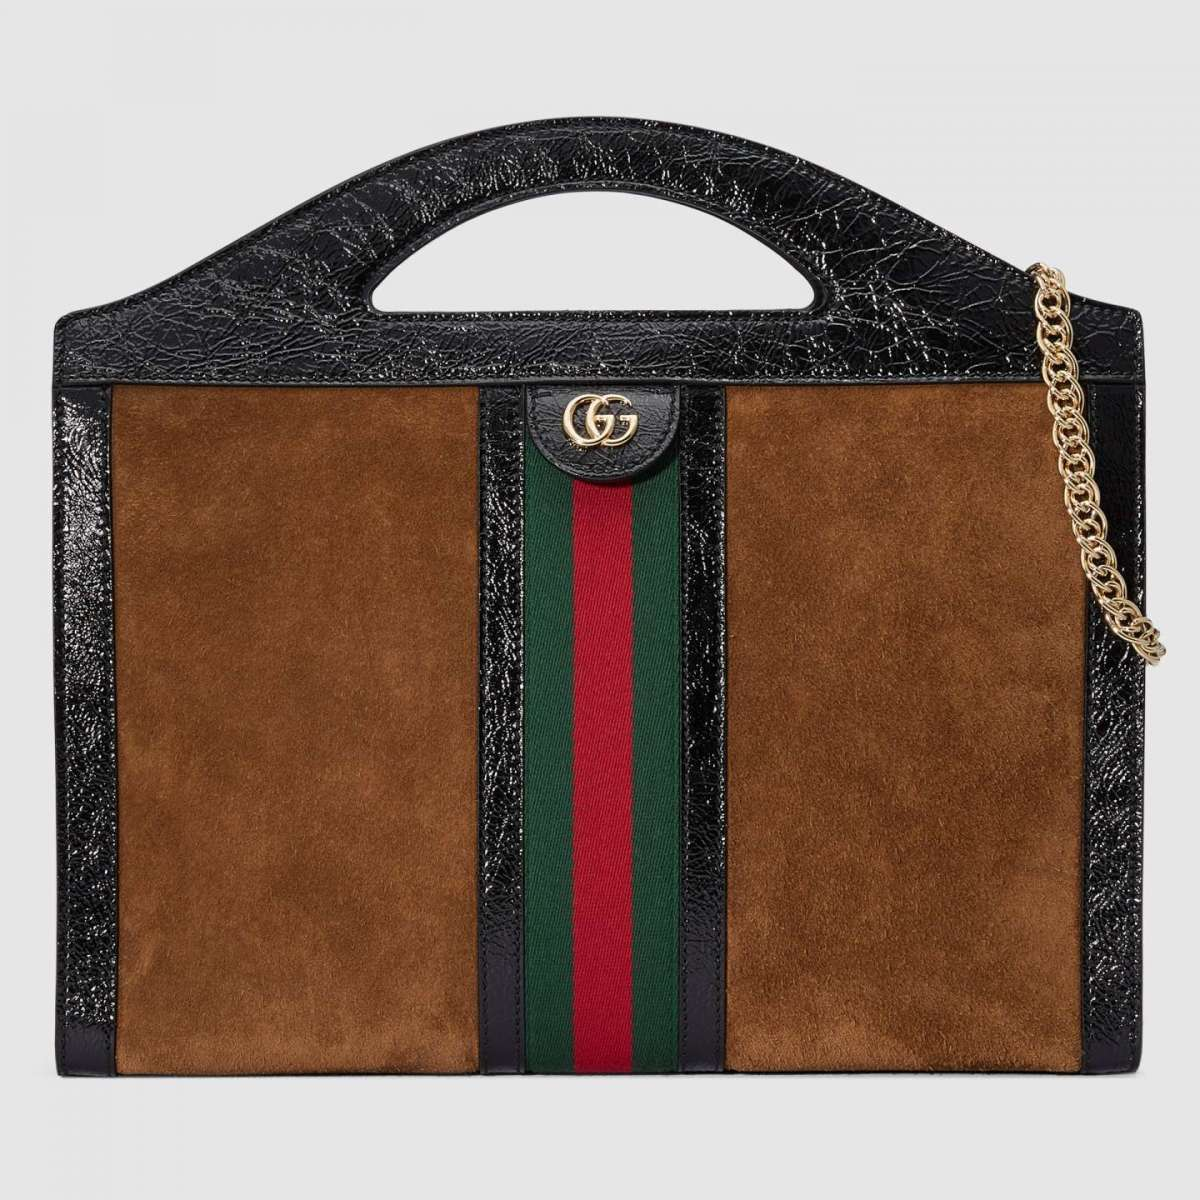 Borsa a mano Ophidia misura media Gucci a 1980 euro